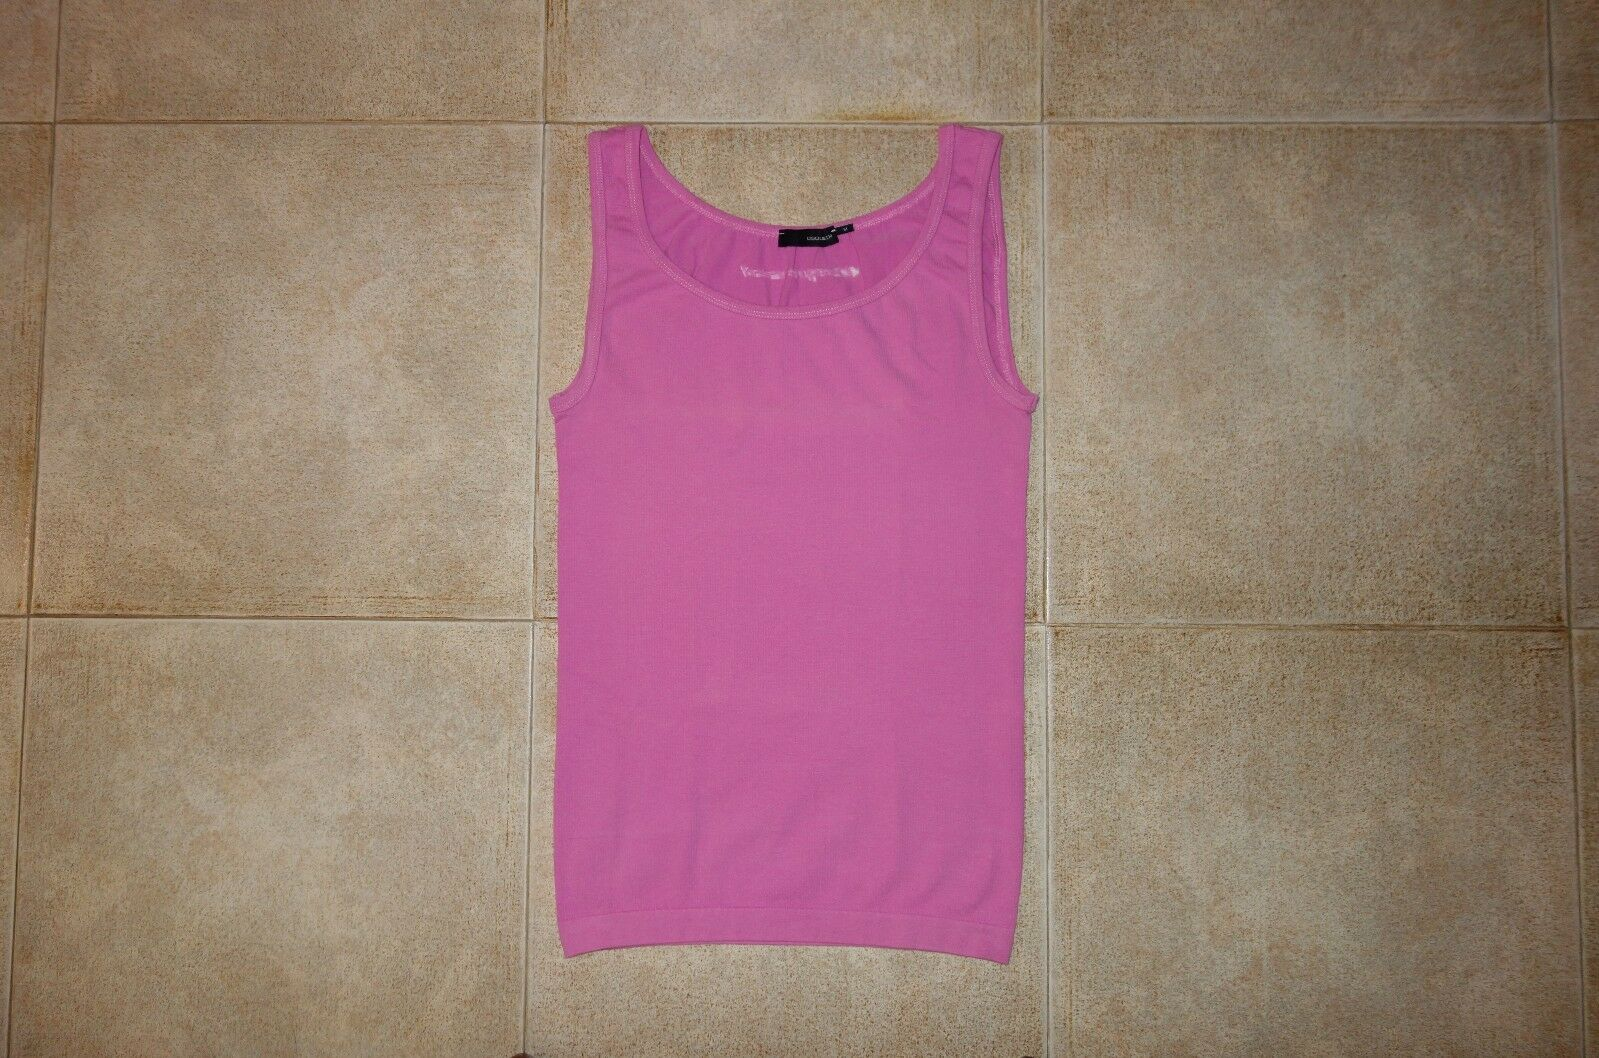 Dsquared² Runway PINK Cotton Canotta Singlet T-shirt M Made in , RARE